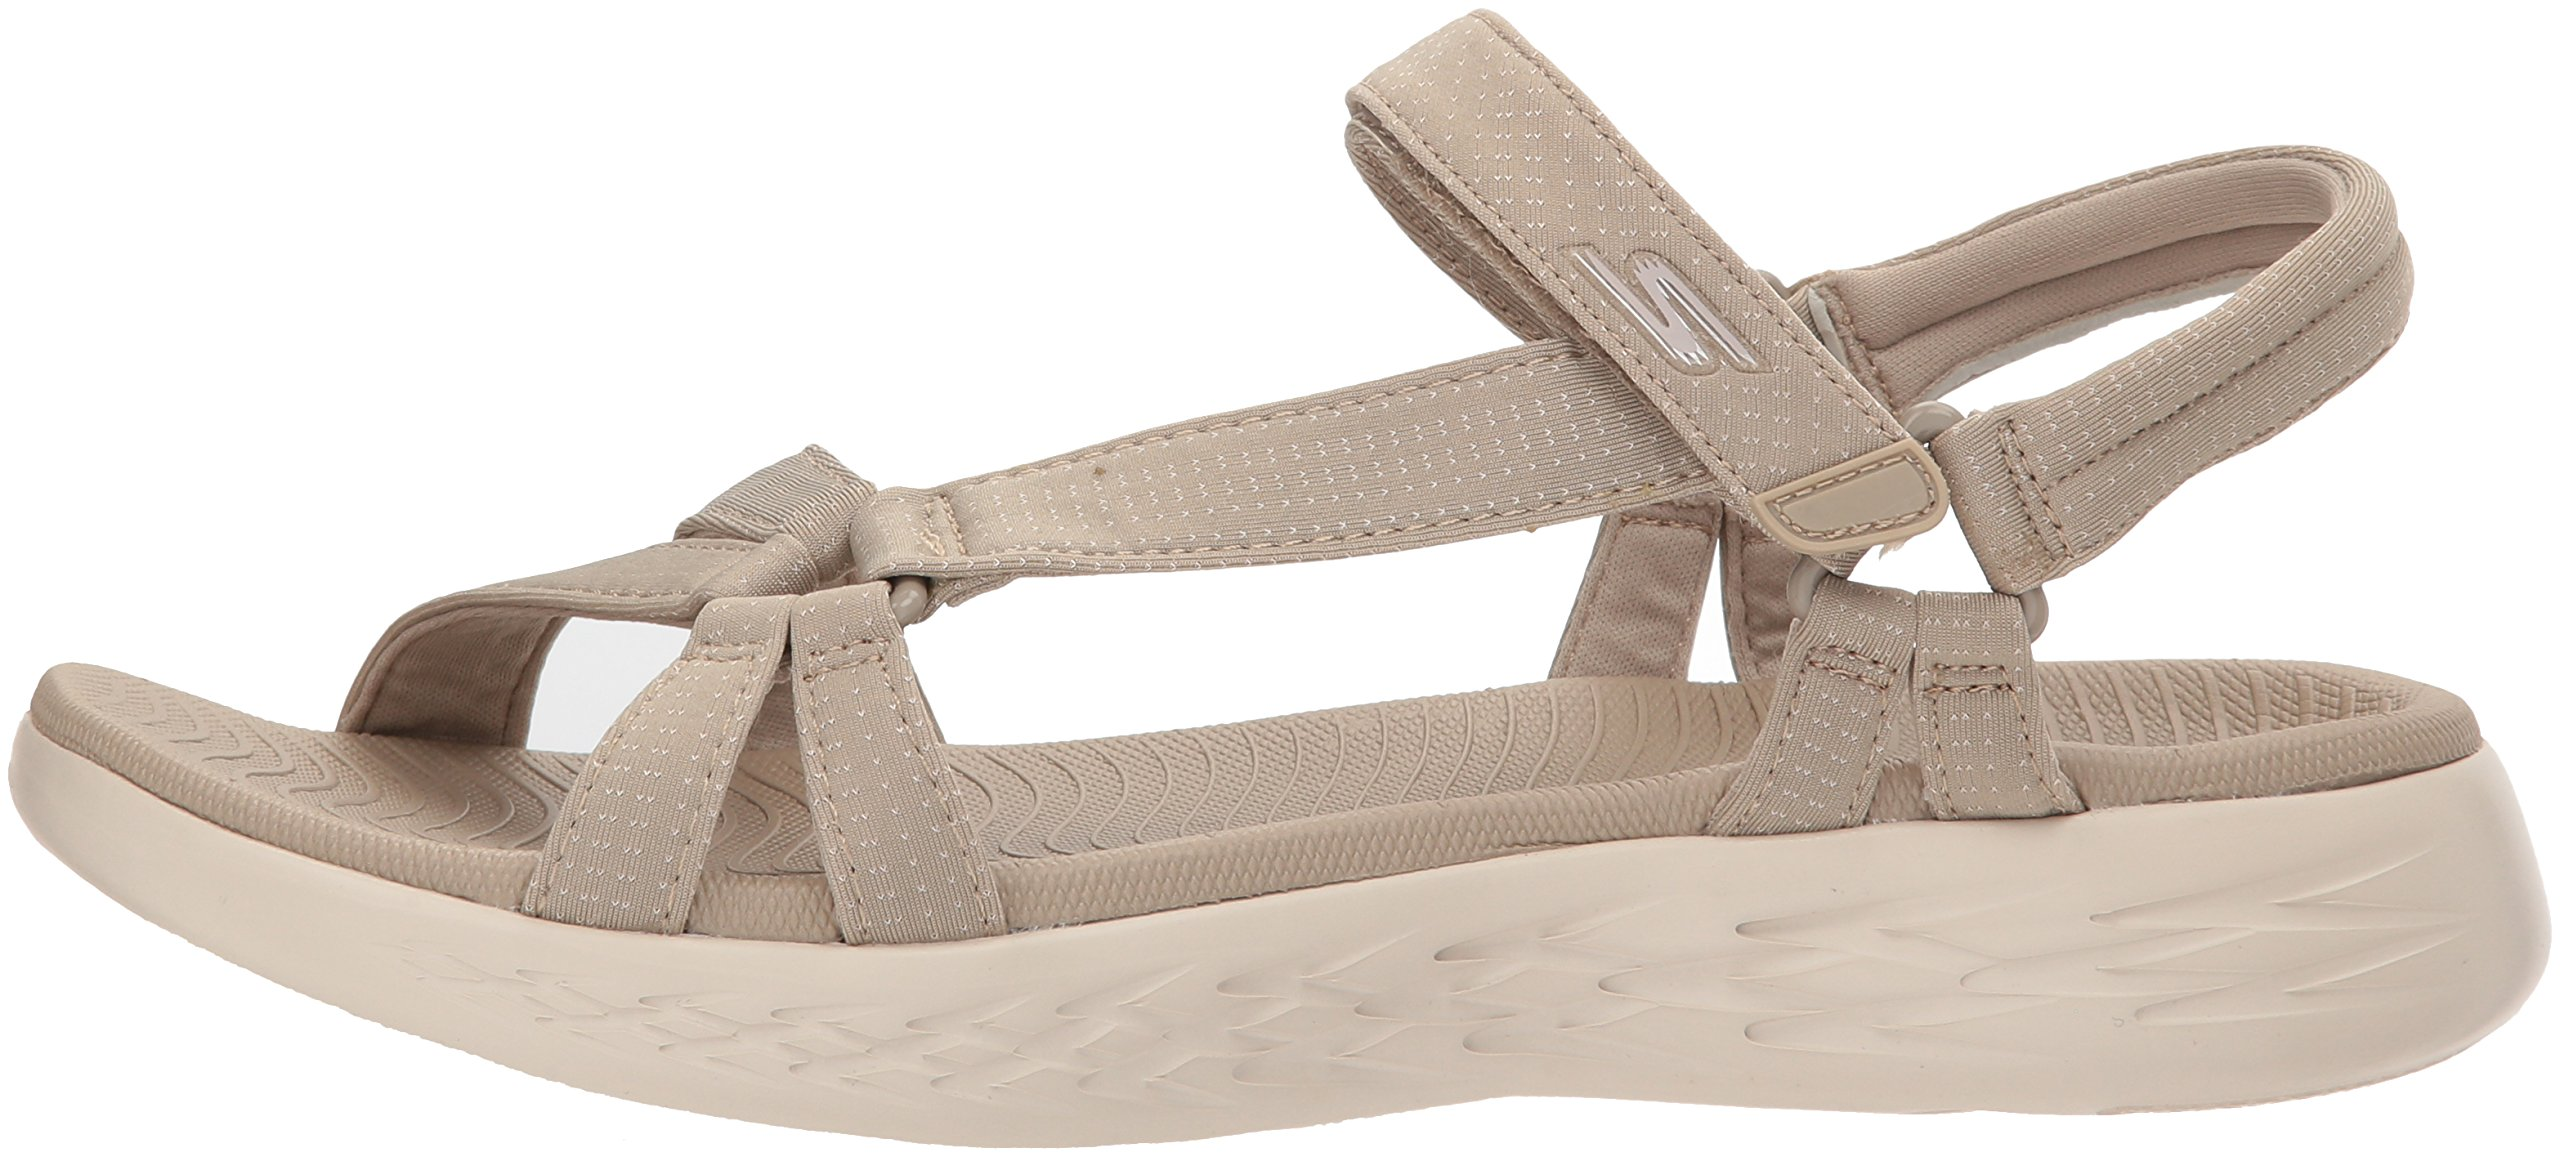 Skechers Performance Women's on-The-Go 600-Brilliancy Wide Sport Sandal,Natural,6 W US by Skechers (Image #5)